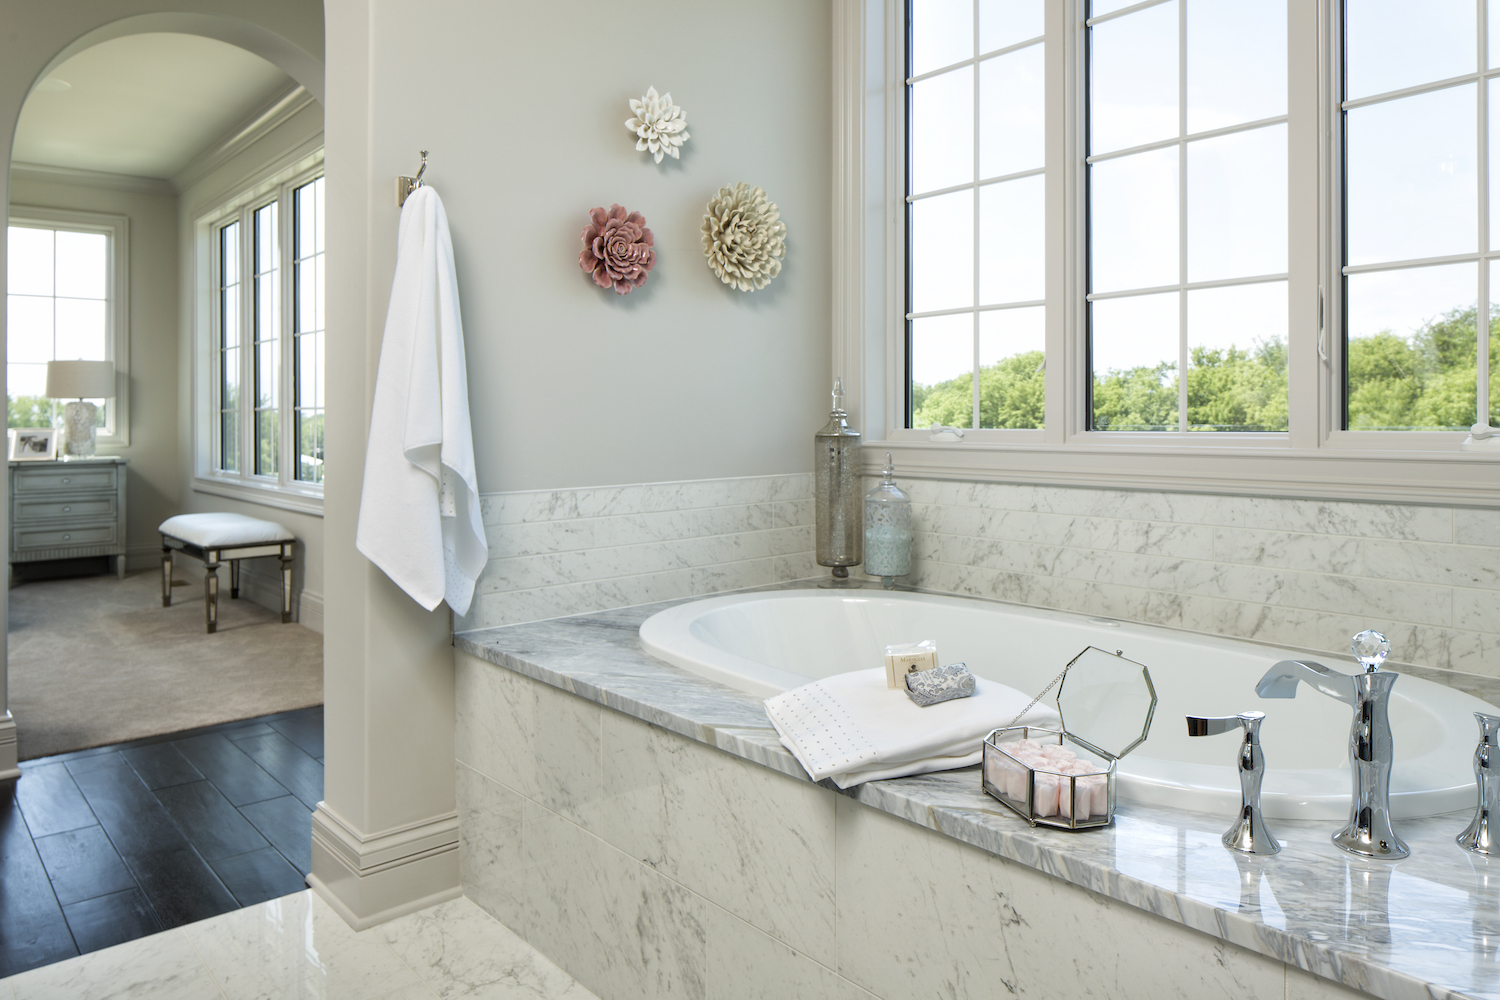 Superbe Granite Bathtub Surround By Cu0026D Granite Minneapolis, St Paul, Twin Cities  Metro